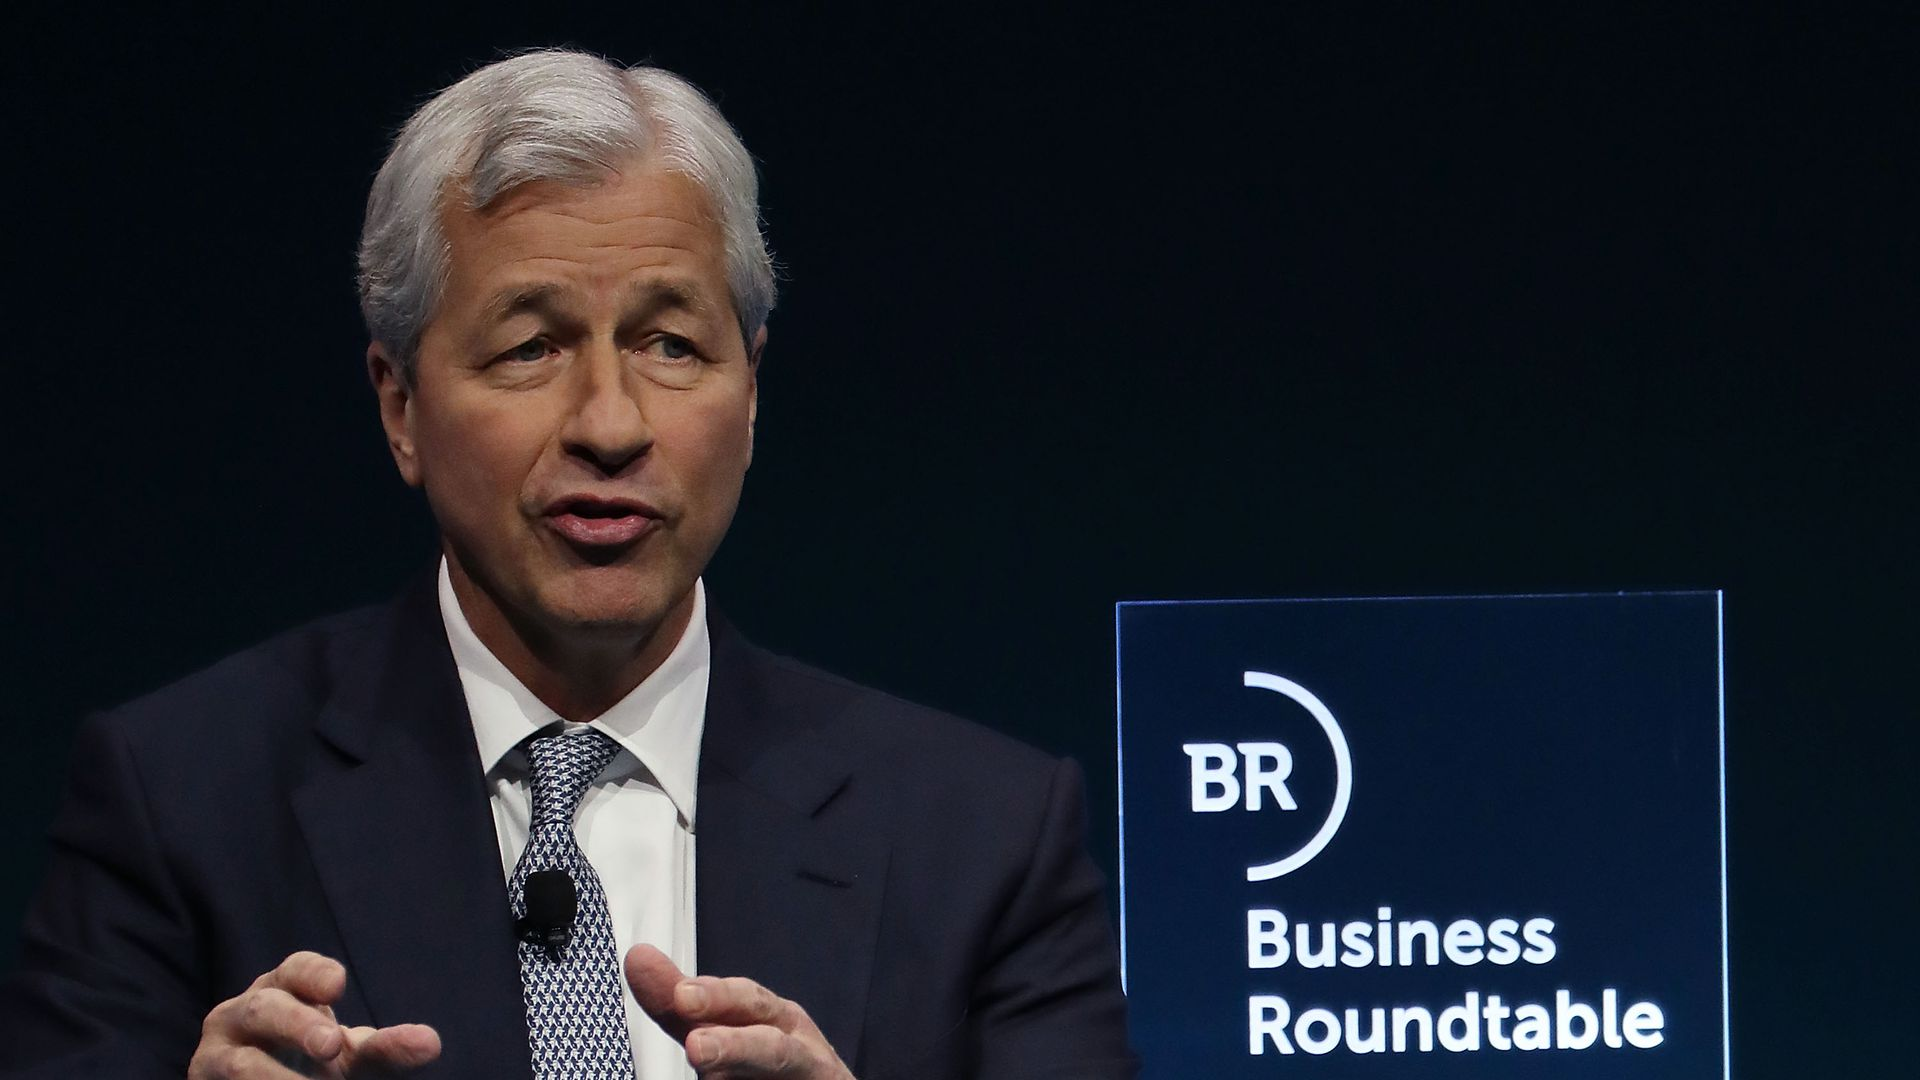 Business Roundtable survey finds CEO optimism dropped for 7th straight quarter